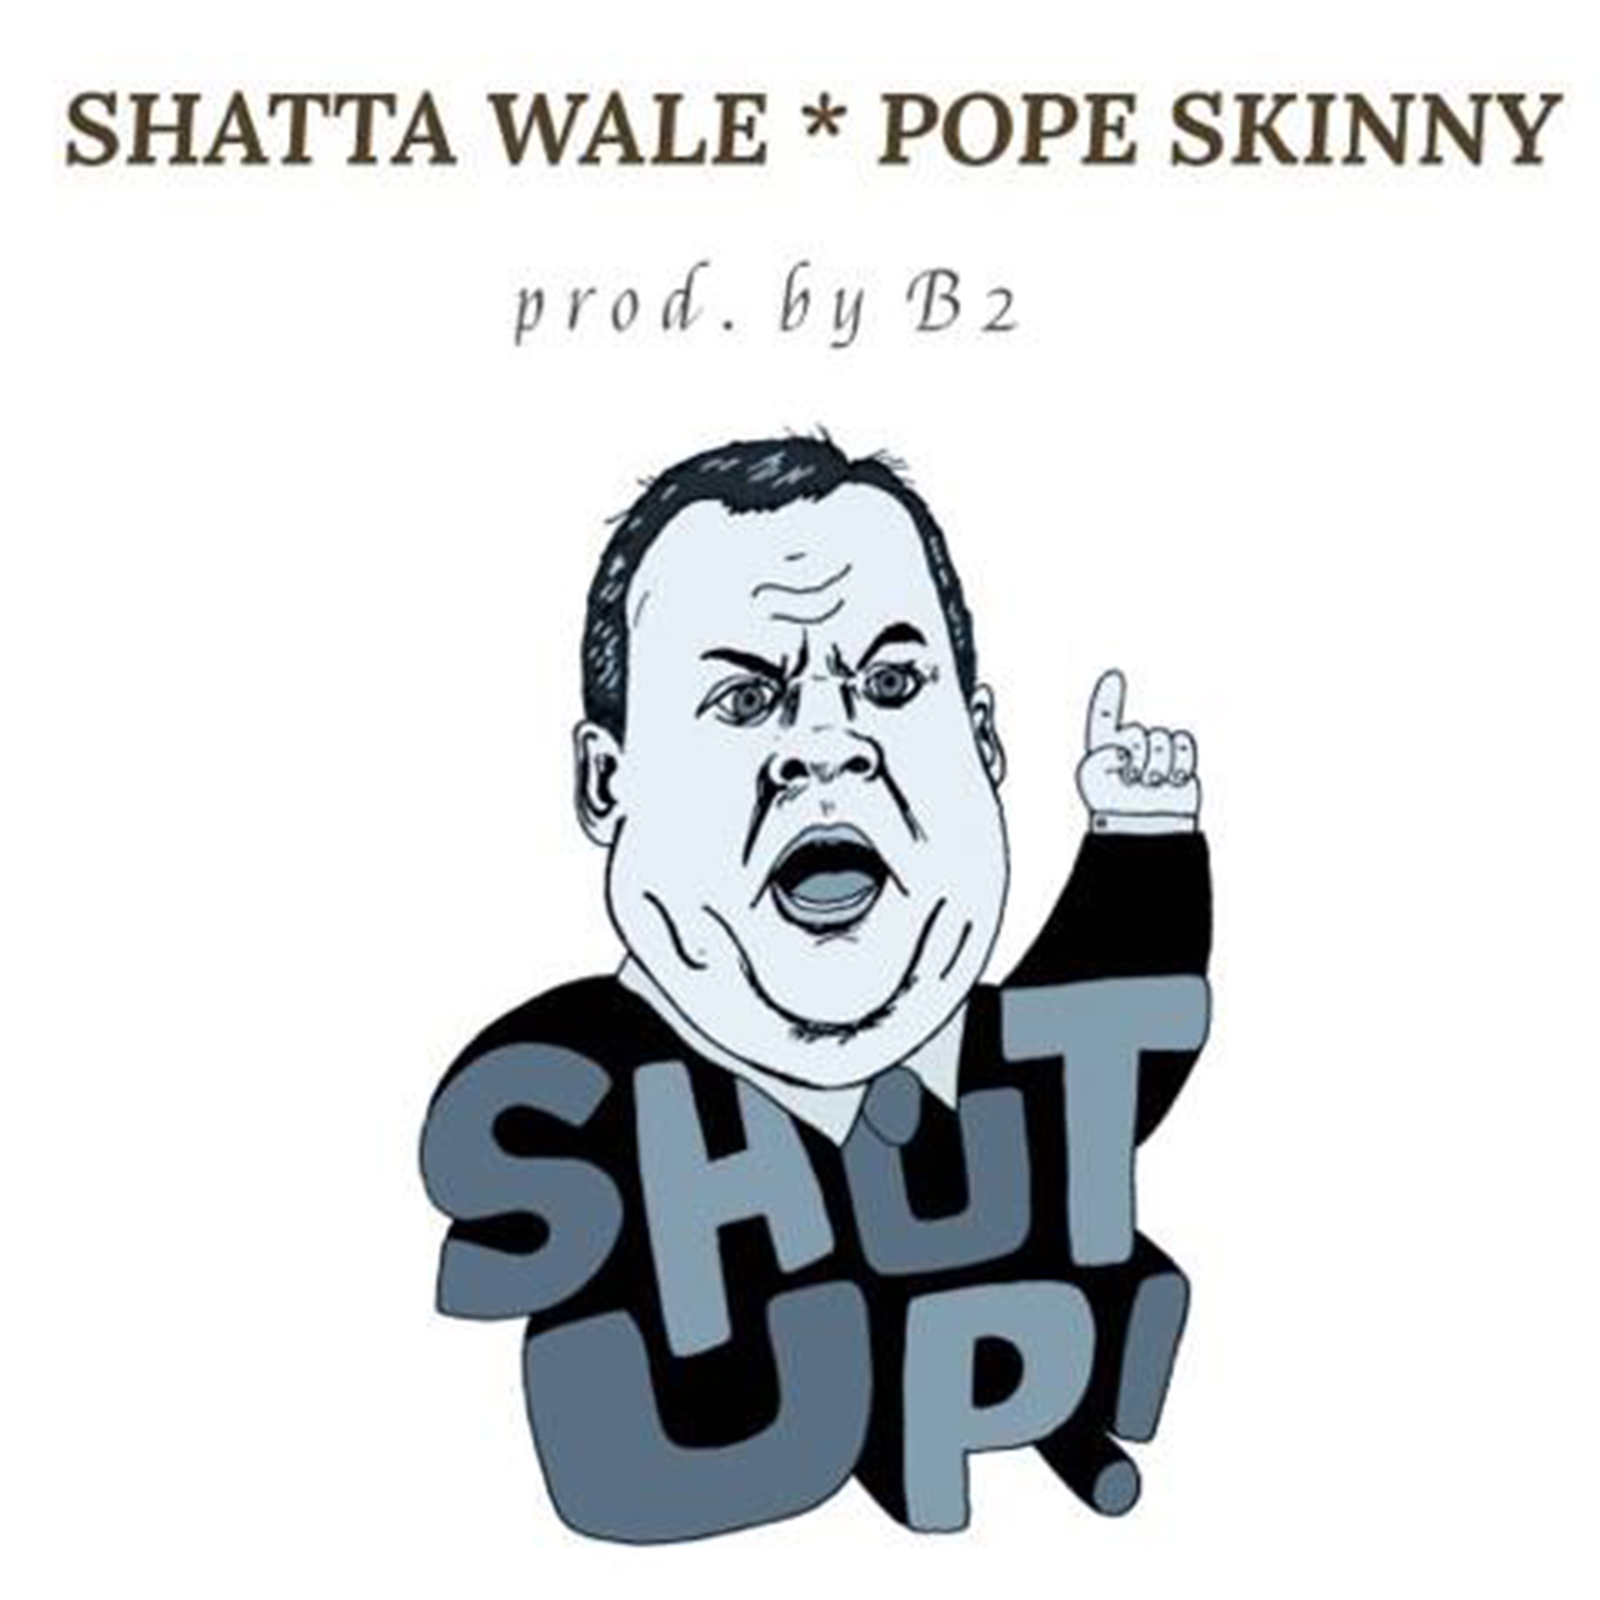 Shut Up by Shatta Wale feat. Pope Skinny